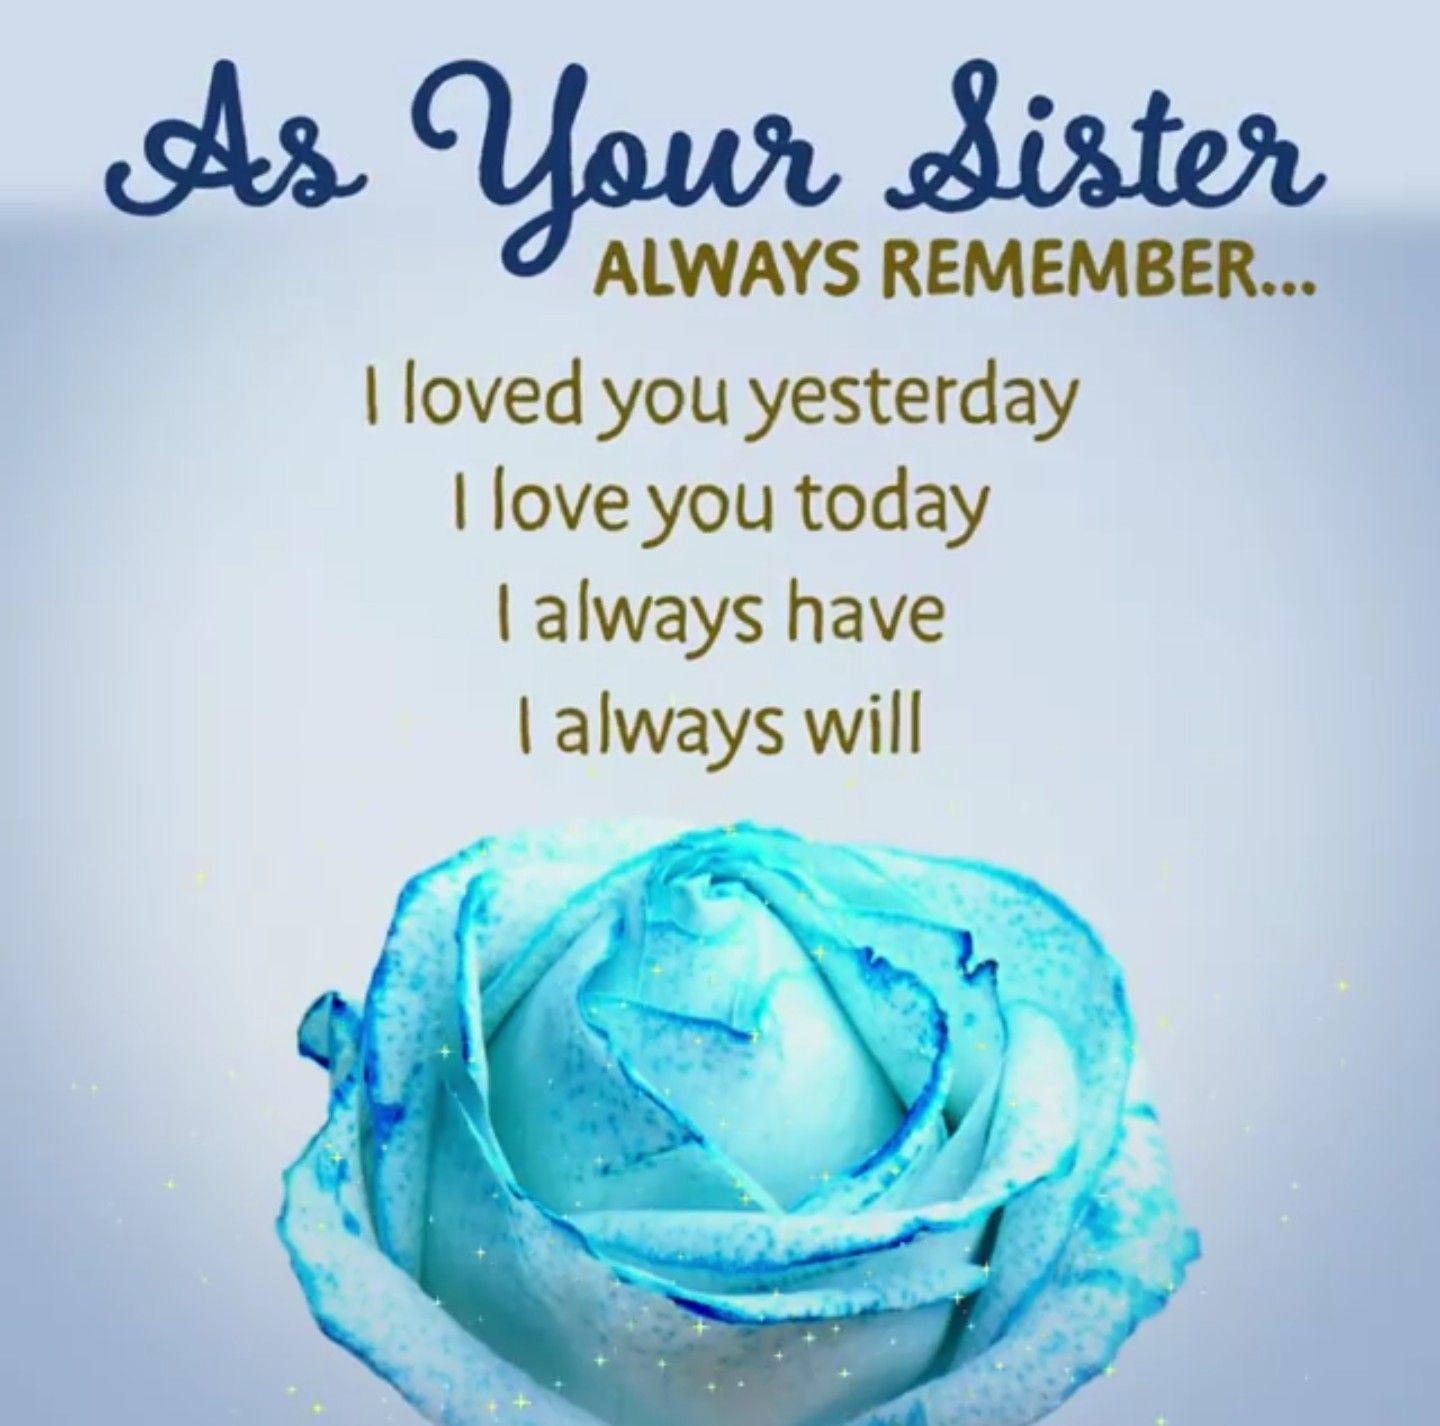 Pin By Amy On Memories Special Lil Sis Love You Forever I Will Always Love You Quotes Always Love You Quotes Love Your Sister